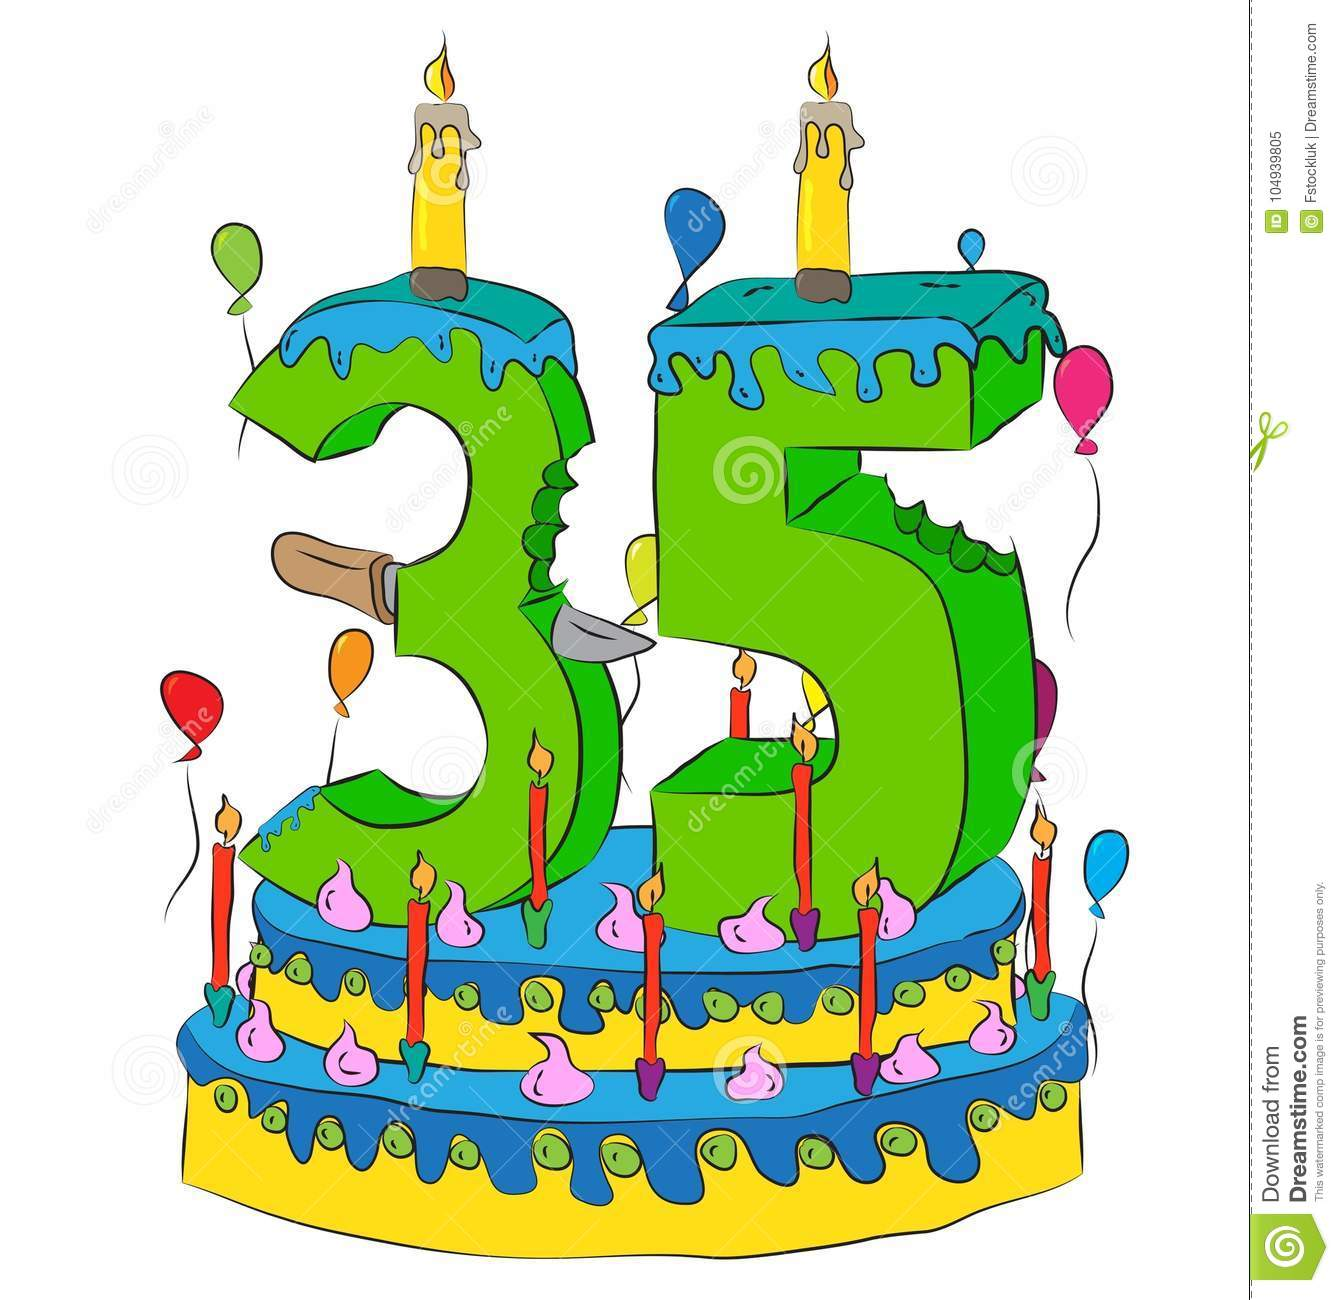 35 Birthday Cake With Number Thity Five Candle Celebrating Thirty Fifth Year Of Life Colorful Balloons And Chocolate Frosting